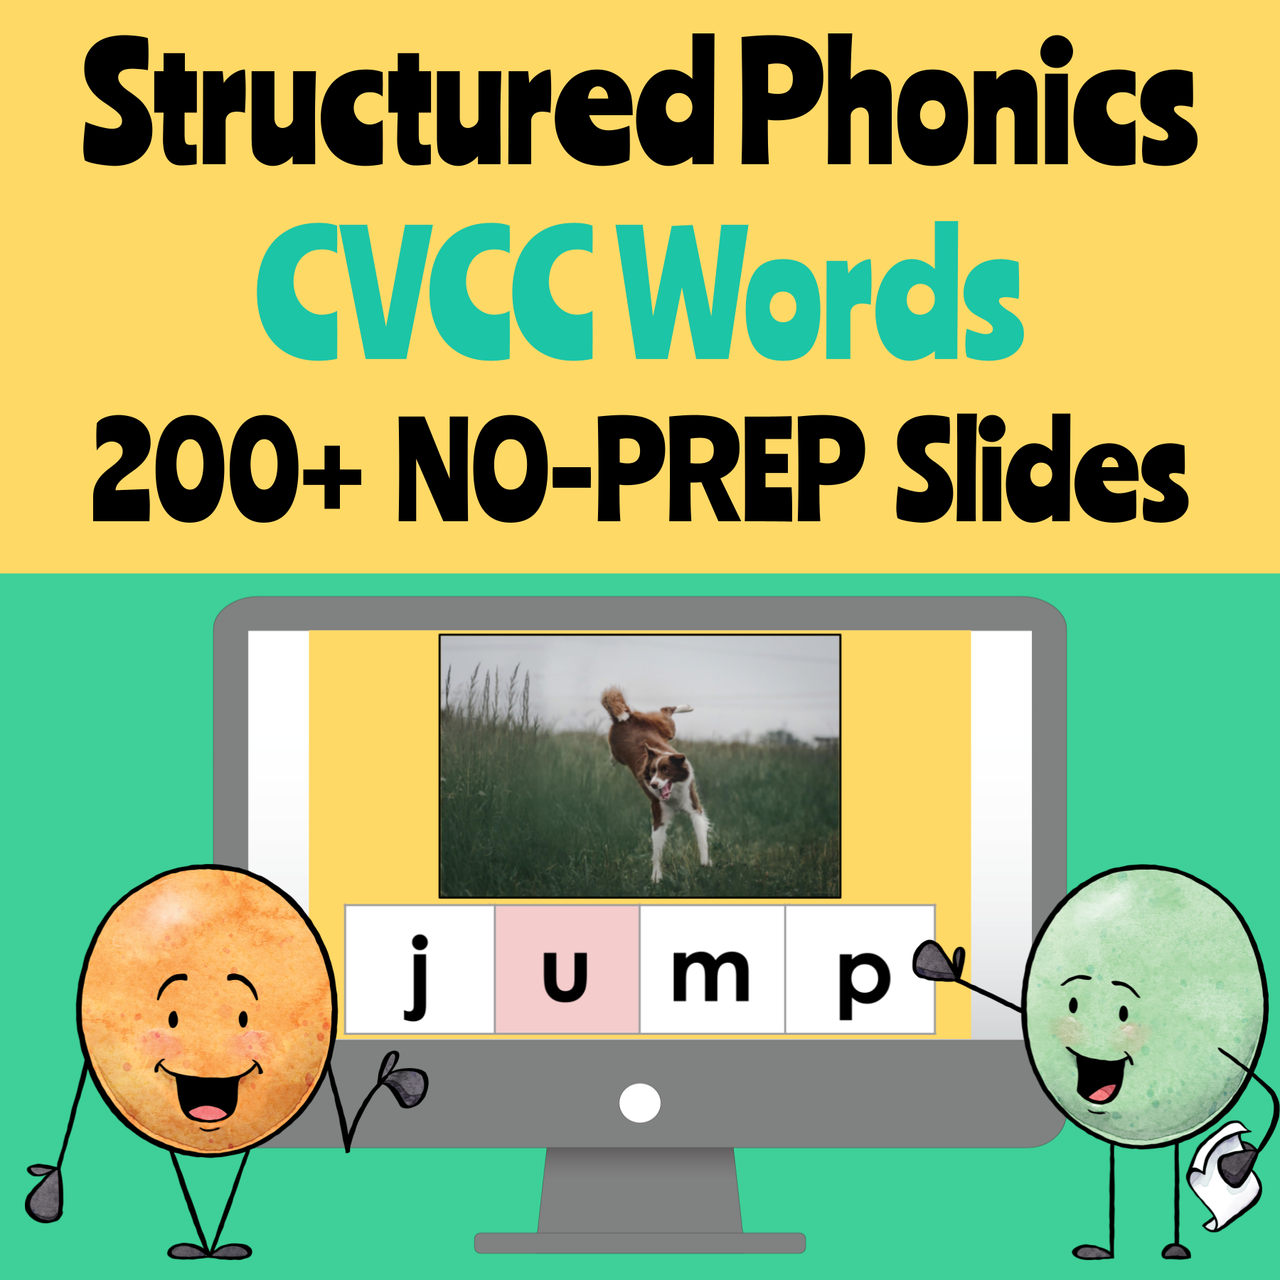 Structured Phonics Blending Board for CVCC Words (Remote Ready Resource)